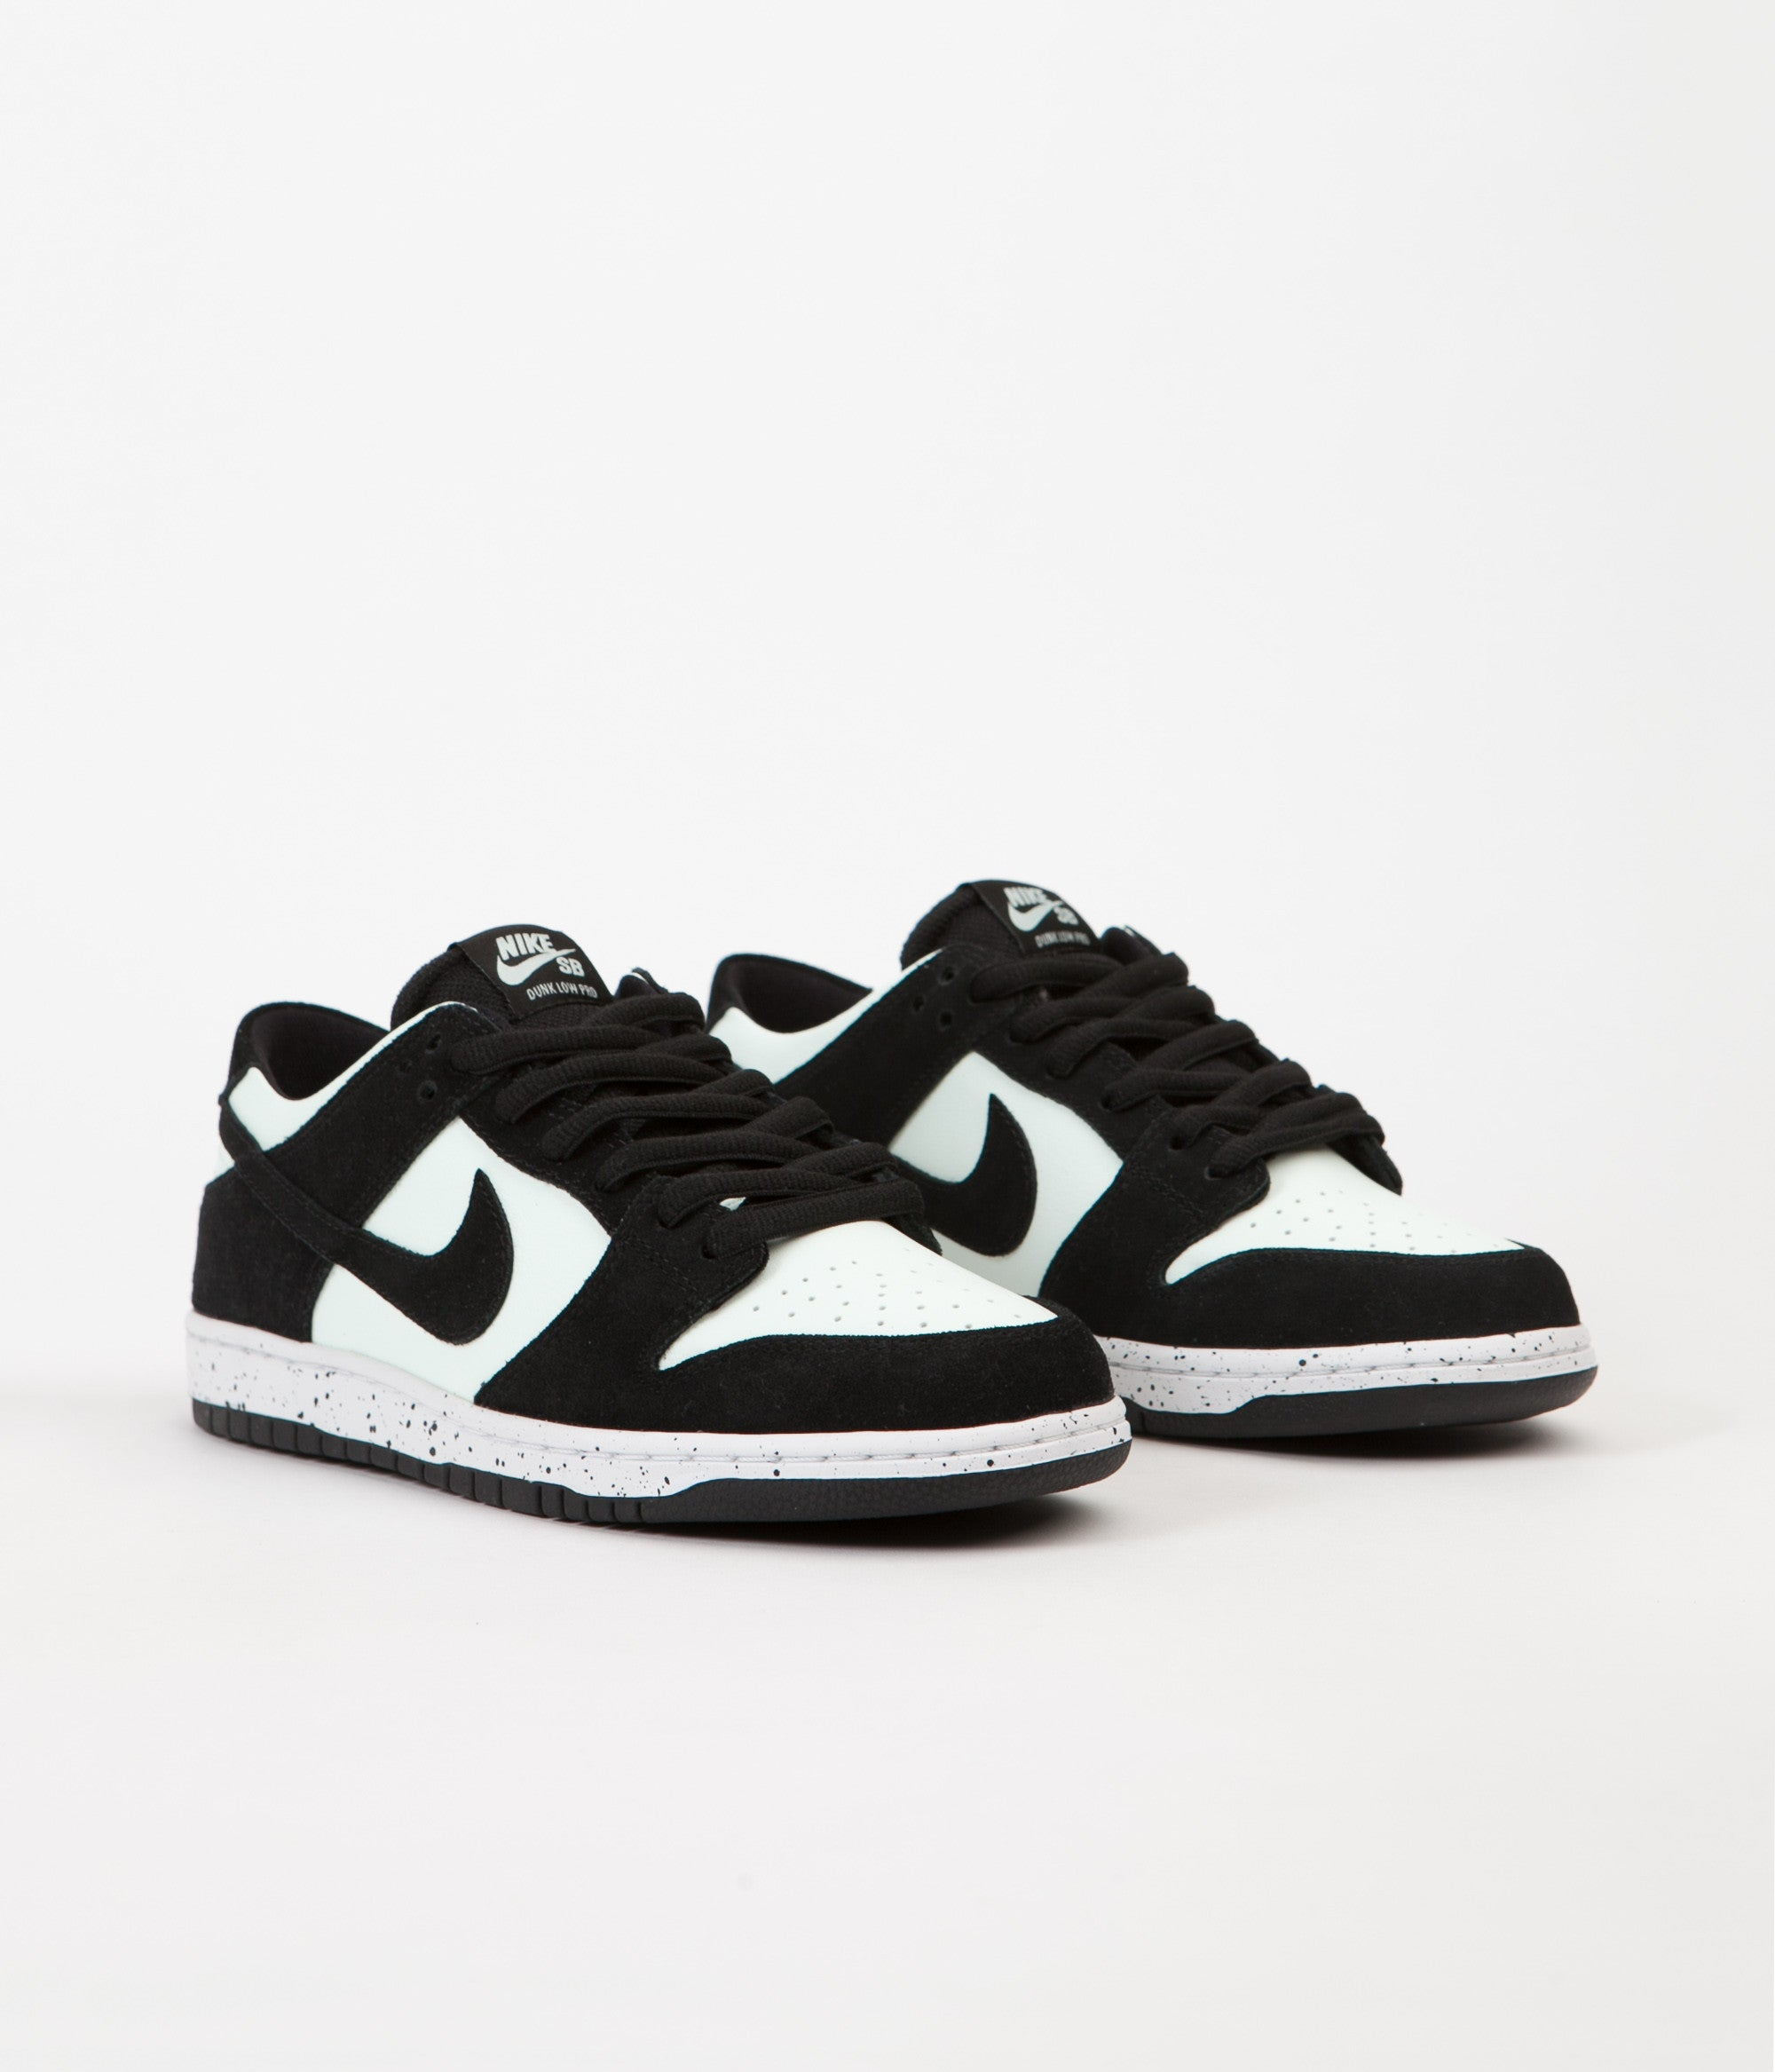 ... Nike SB Dunk Low Pro Shoes - Black   Black - Barely Green - White ... 39534a4a76c8